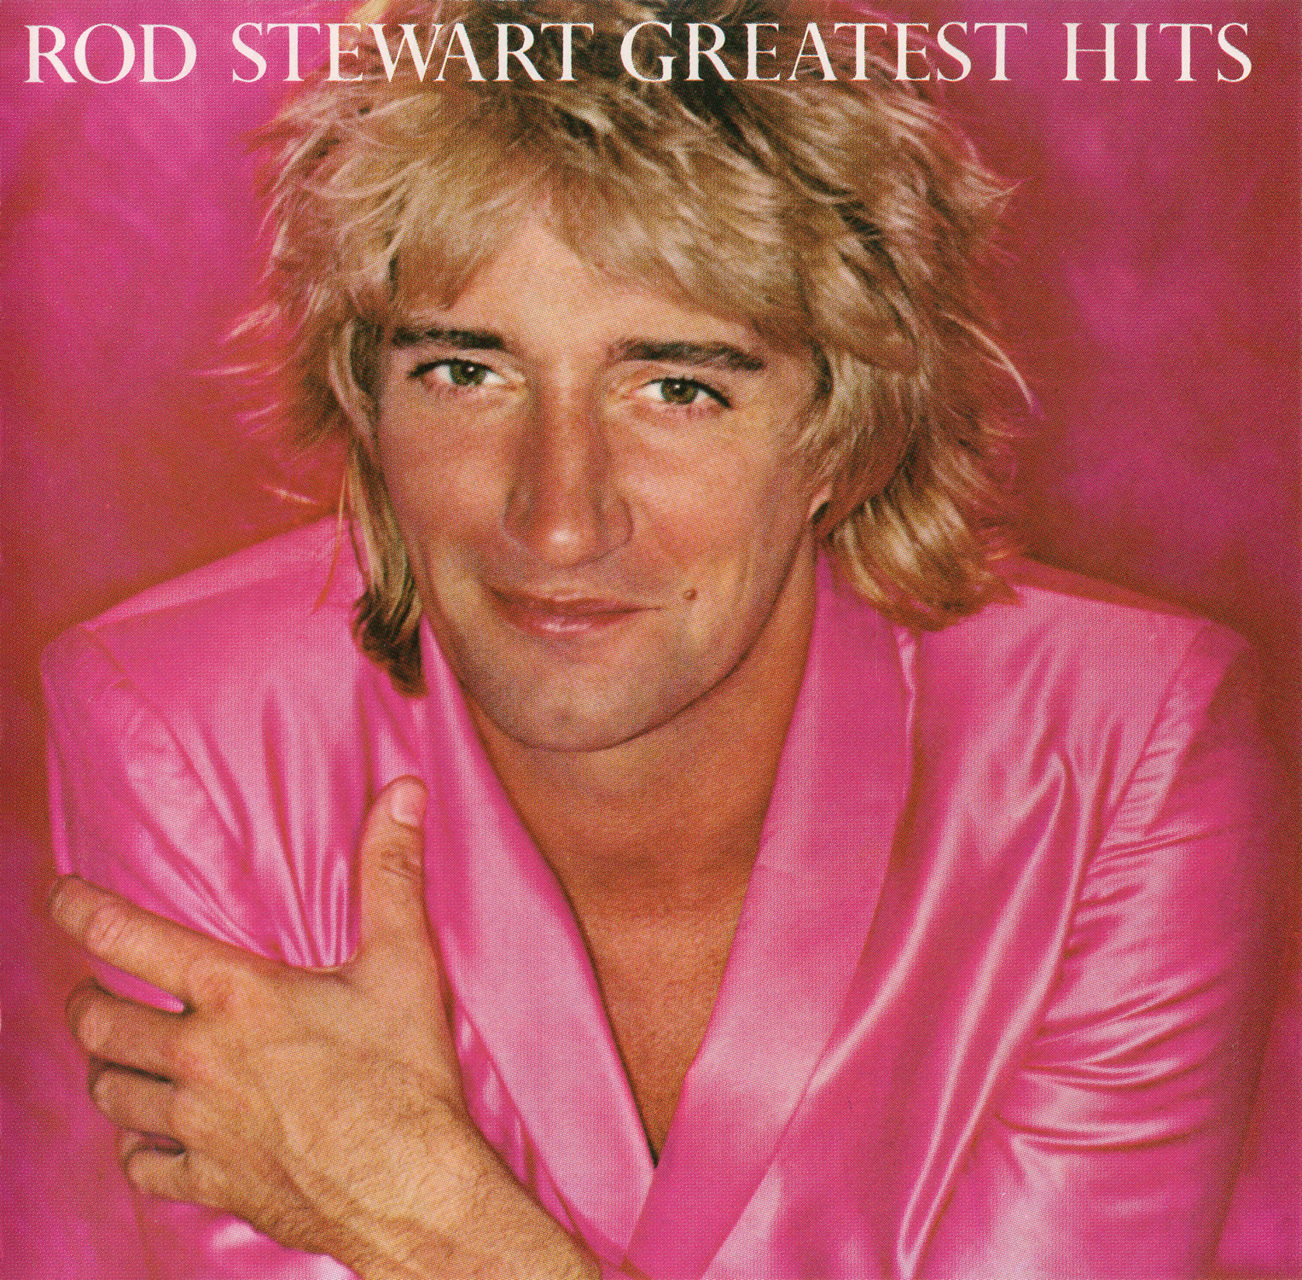 Rod Stewart『Rod Stewart Greatest Hits』高画質ジャケット画像